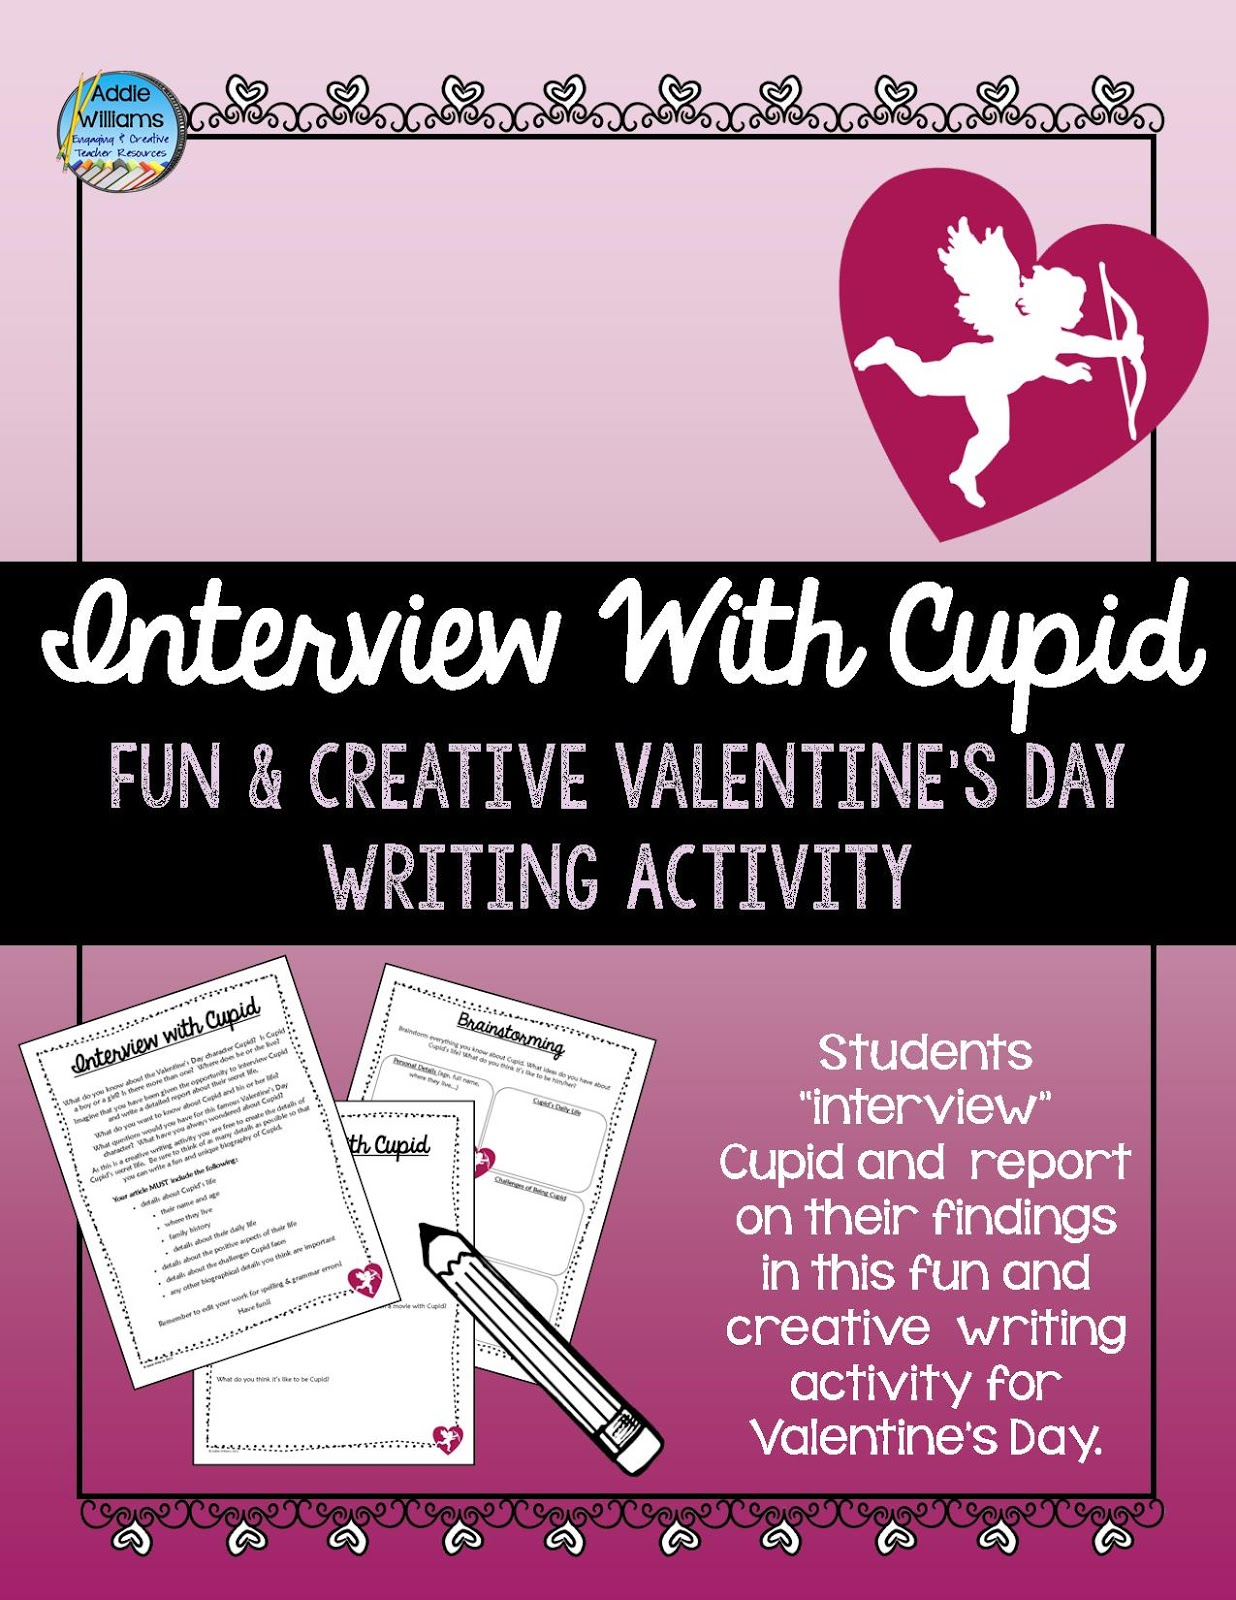 https://www.teacherspayteachers.com/Product/Valentines-Day-Writing-Activity-Interview-With-Cupid-475057